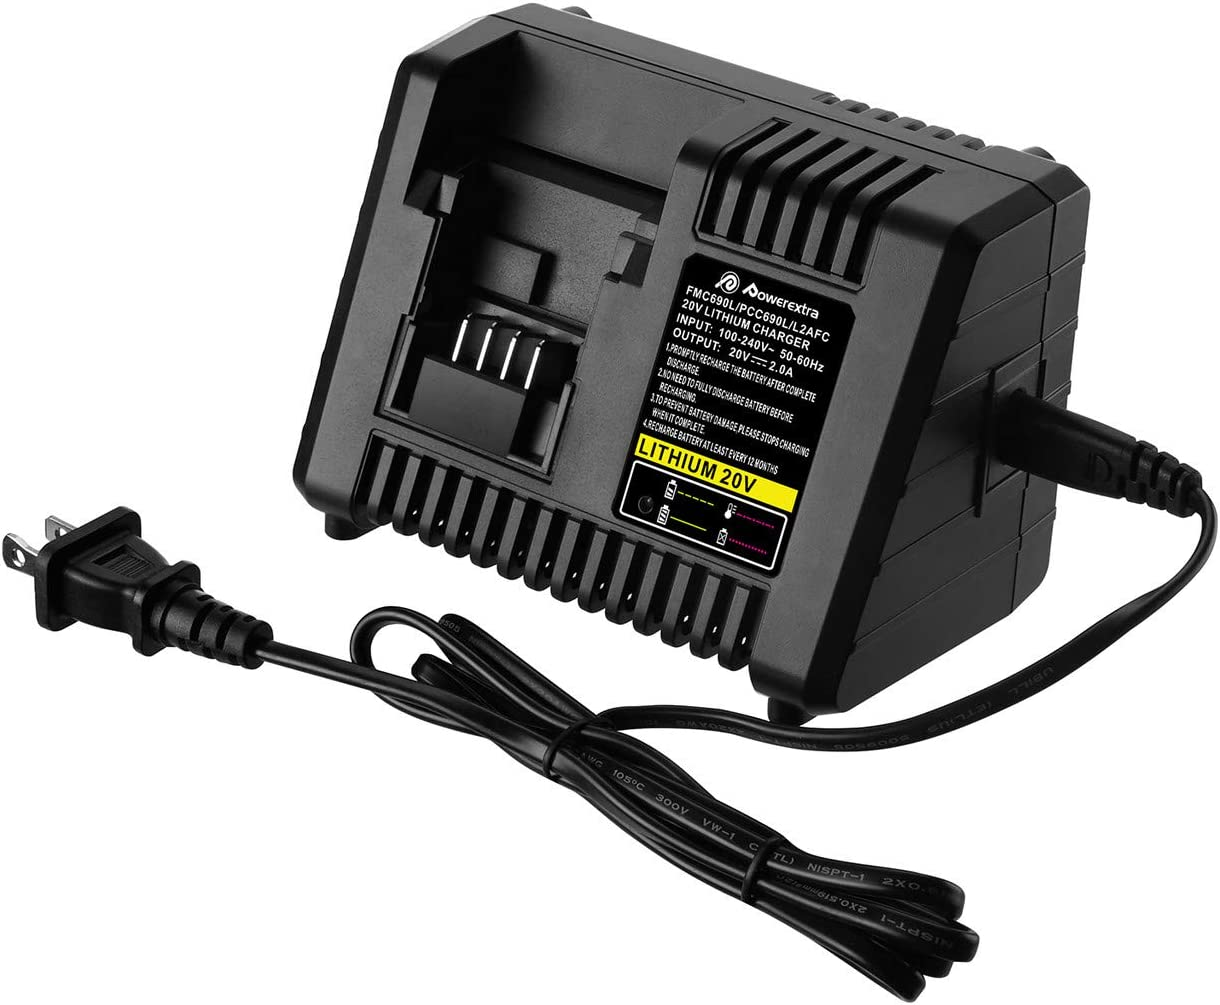 Powerextra 20V Lithium Battery Fast Charger BDCAC202B for Black and Decker 20V Lithium-ion Battery and Porter-Cable 20V Lithium-ion Battery LBXR20 LBXR2020 LB2X4020 PCC685L PCC680L PCC681L LST220